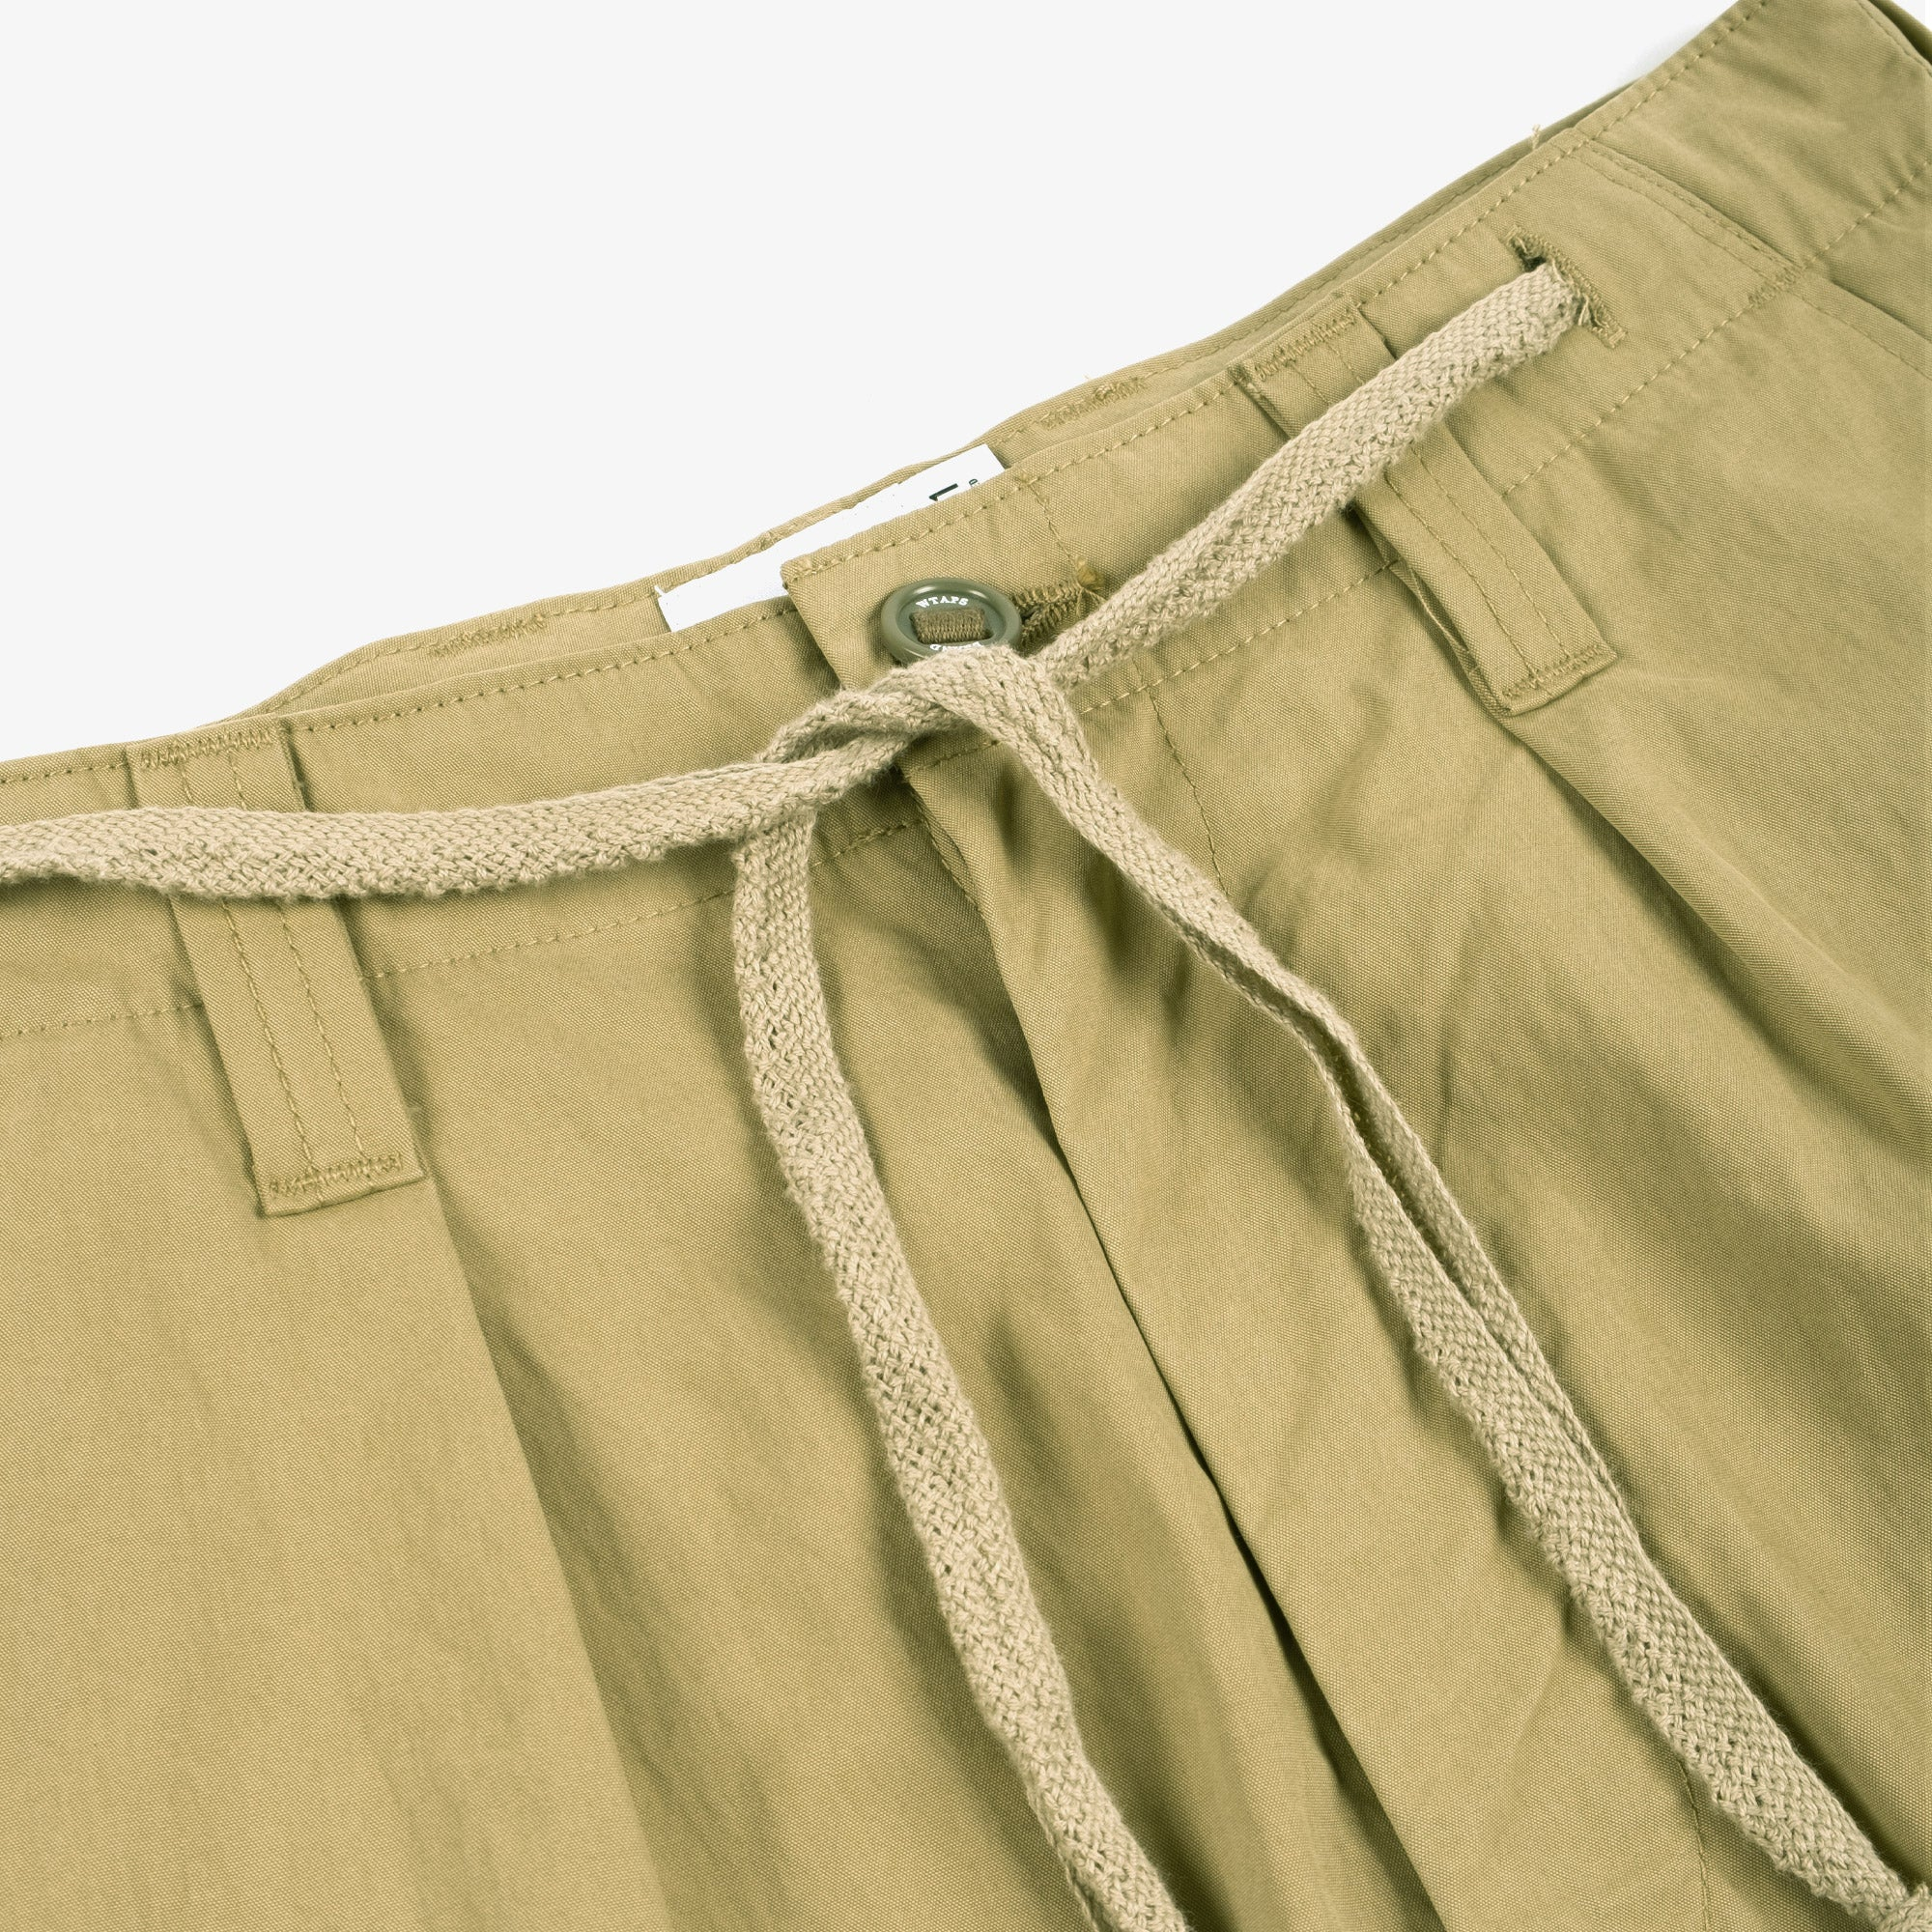 WTAPS Jungle Country Nyco Shorts - Olive Drab 4